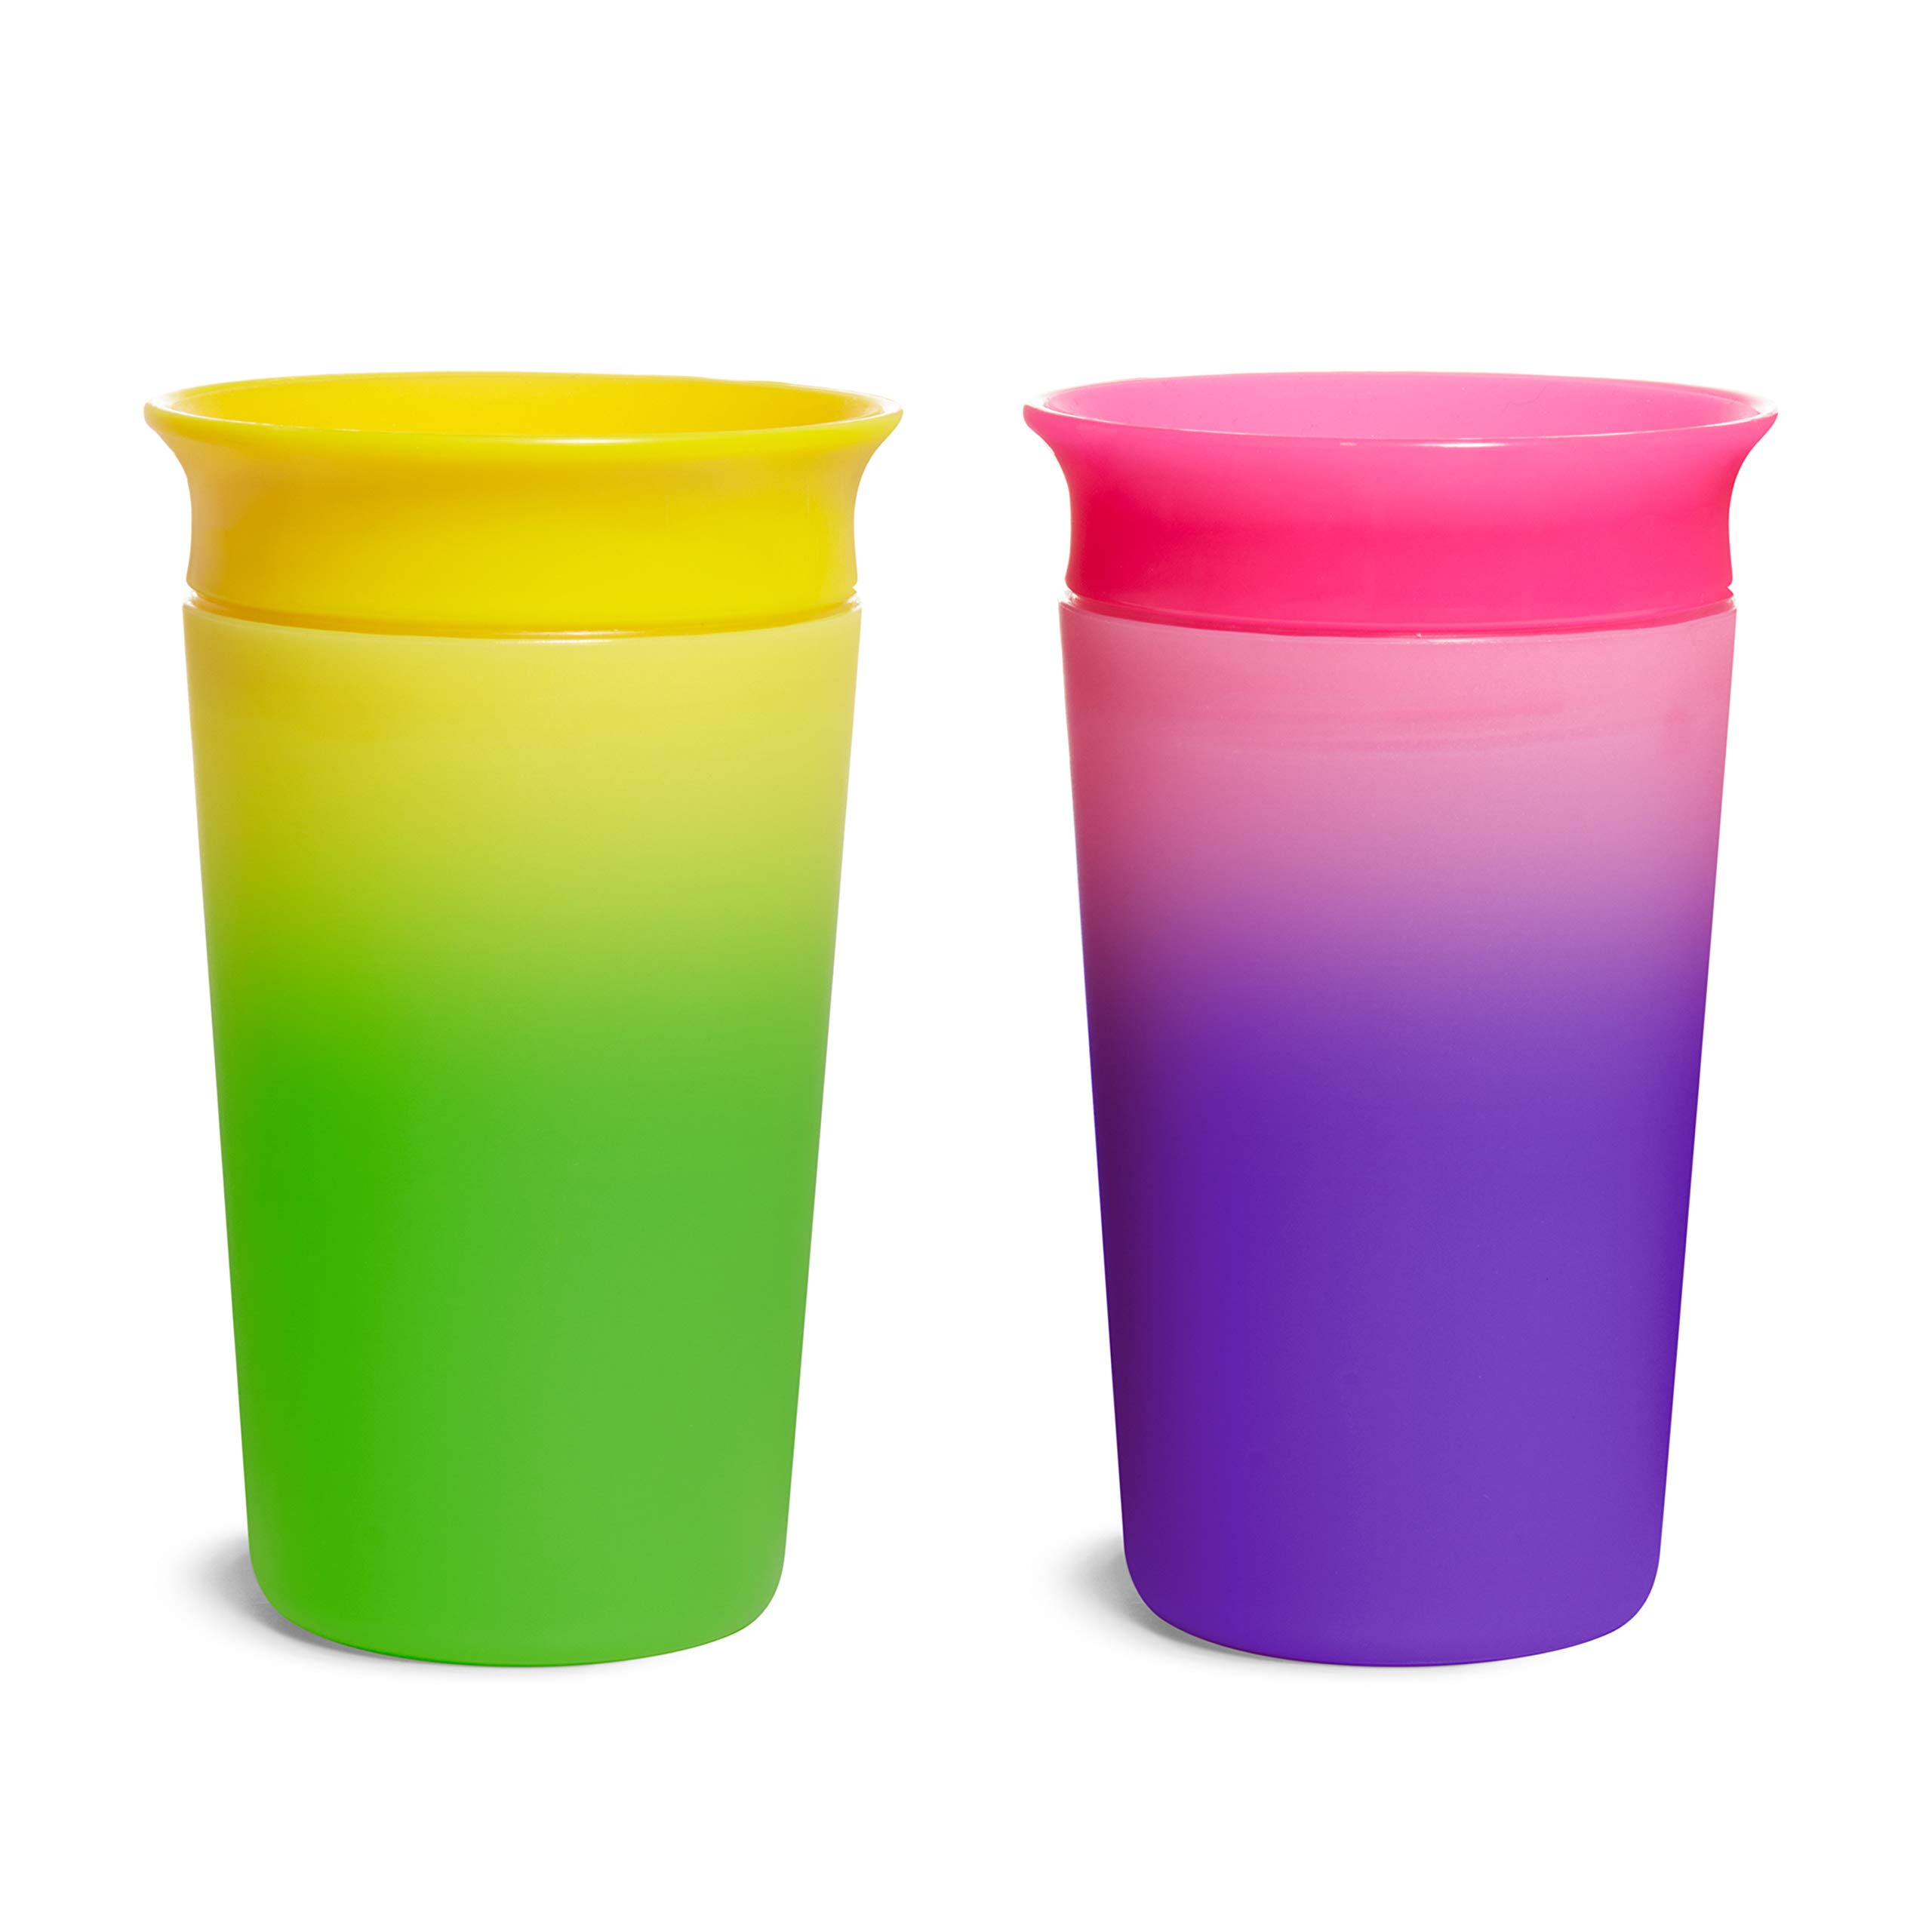 Munchkin Miracle 360 Color Changing Sippy Cup, 9 Oz, 2 Pack, Pink/Yellow